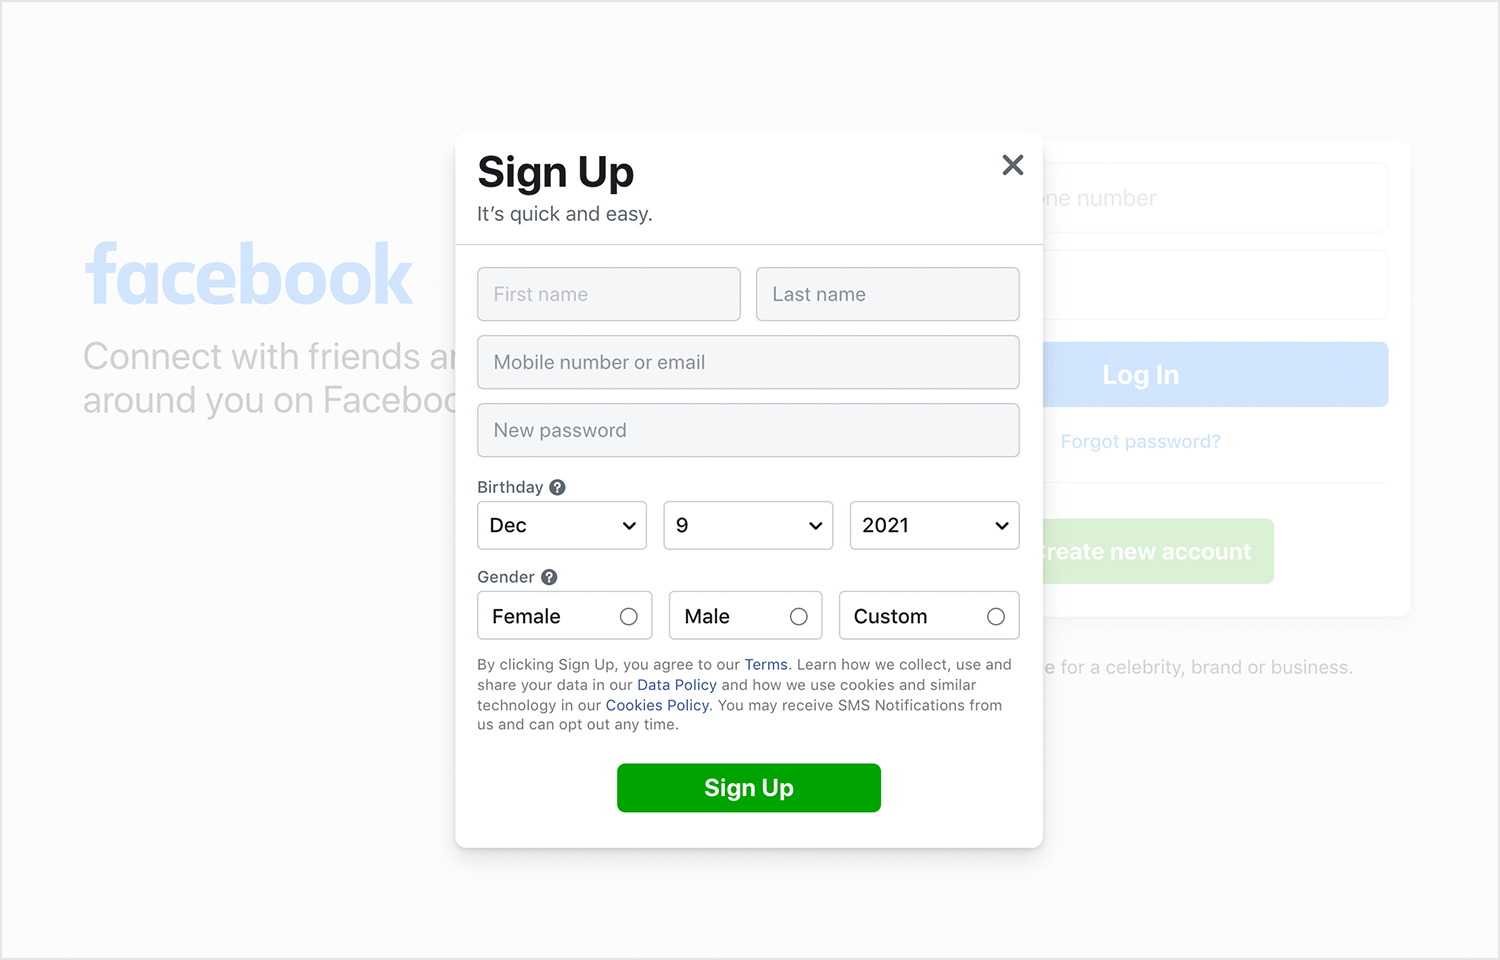 facebook-sign-up-form